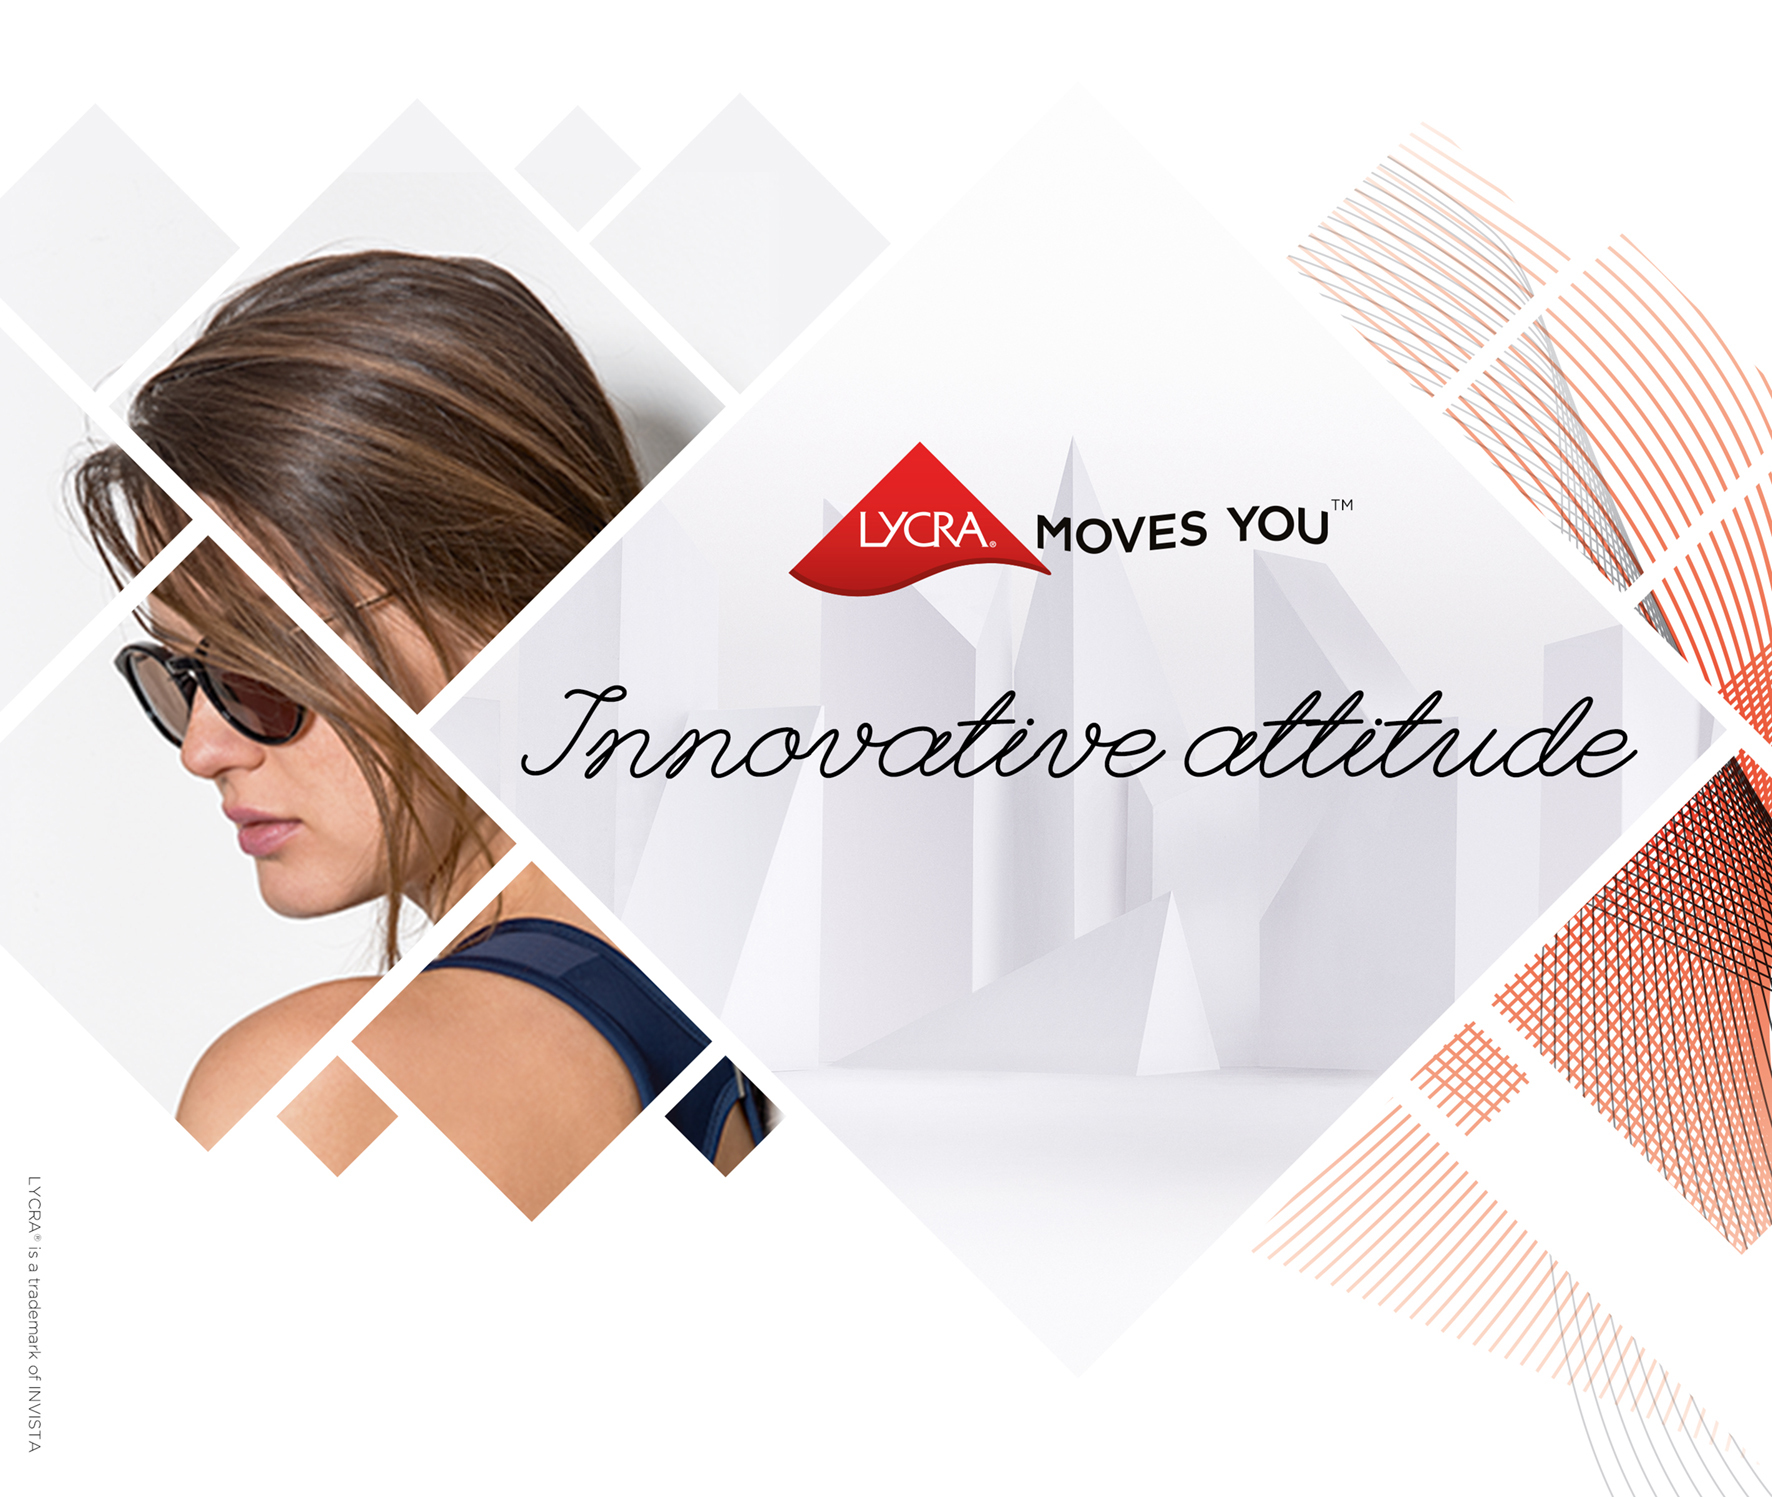 © INVISTA. LYCRA®, the fibre with an Innovative Attitude